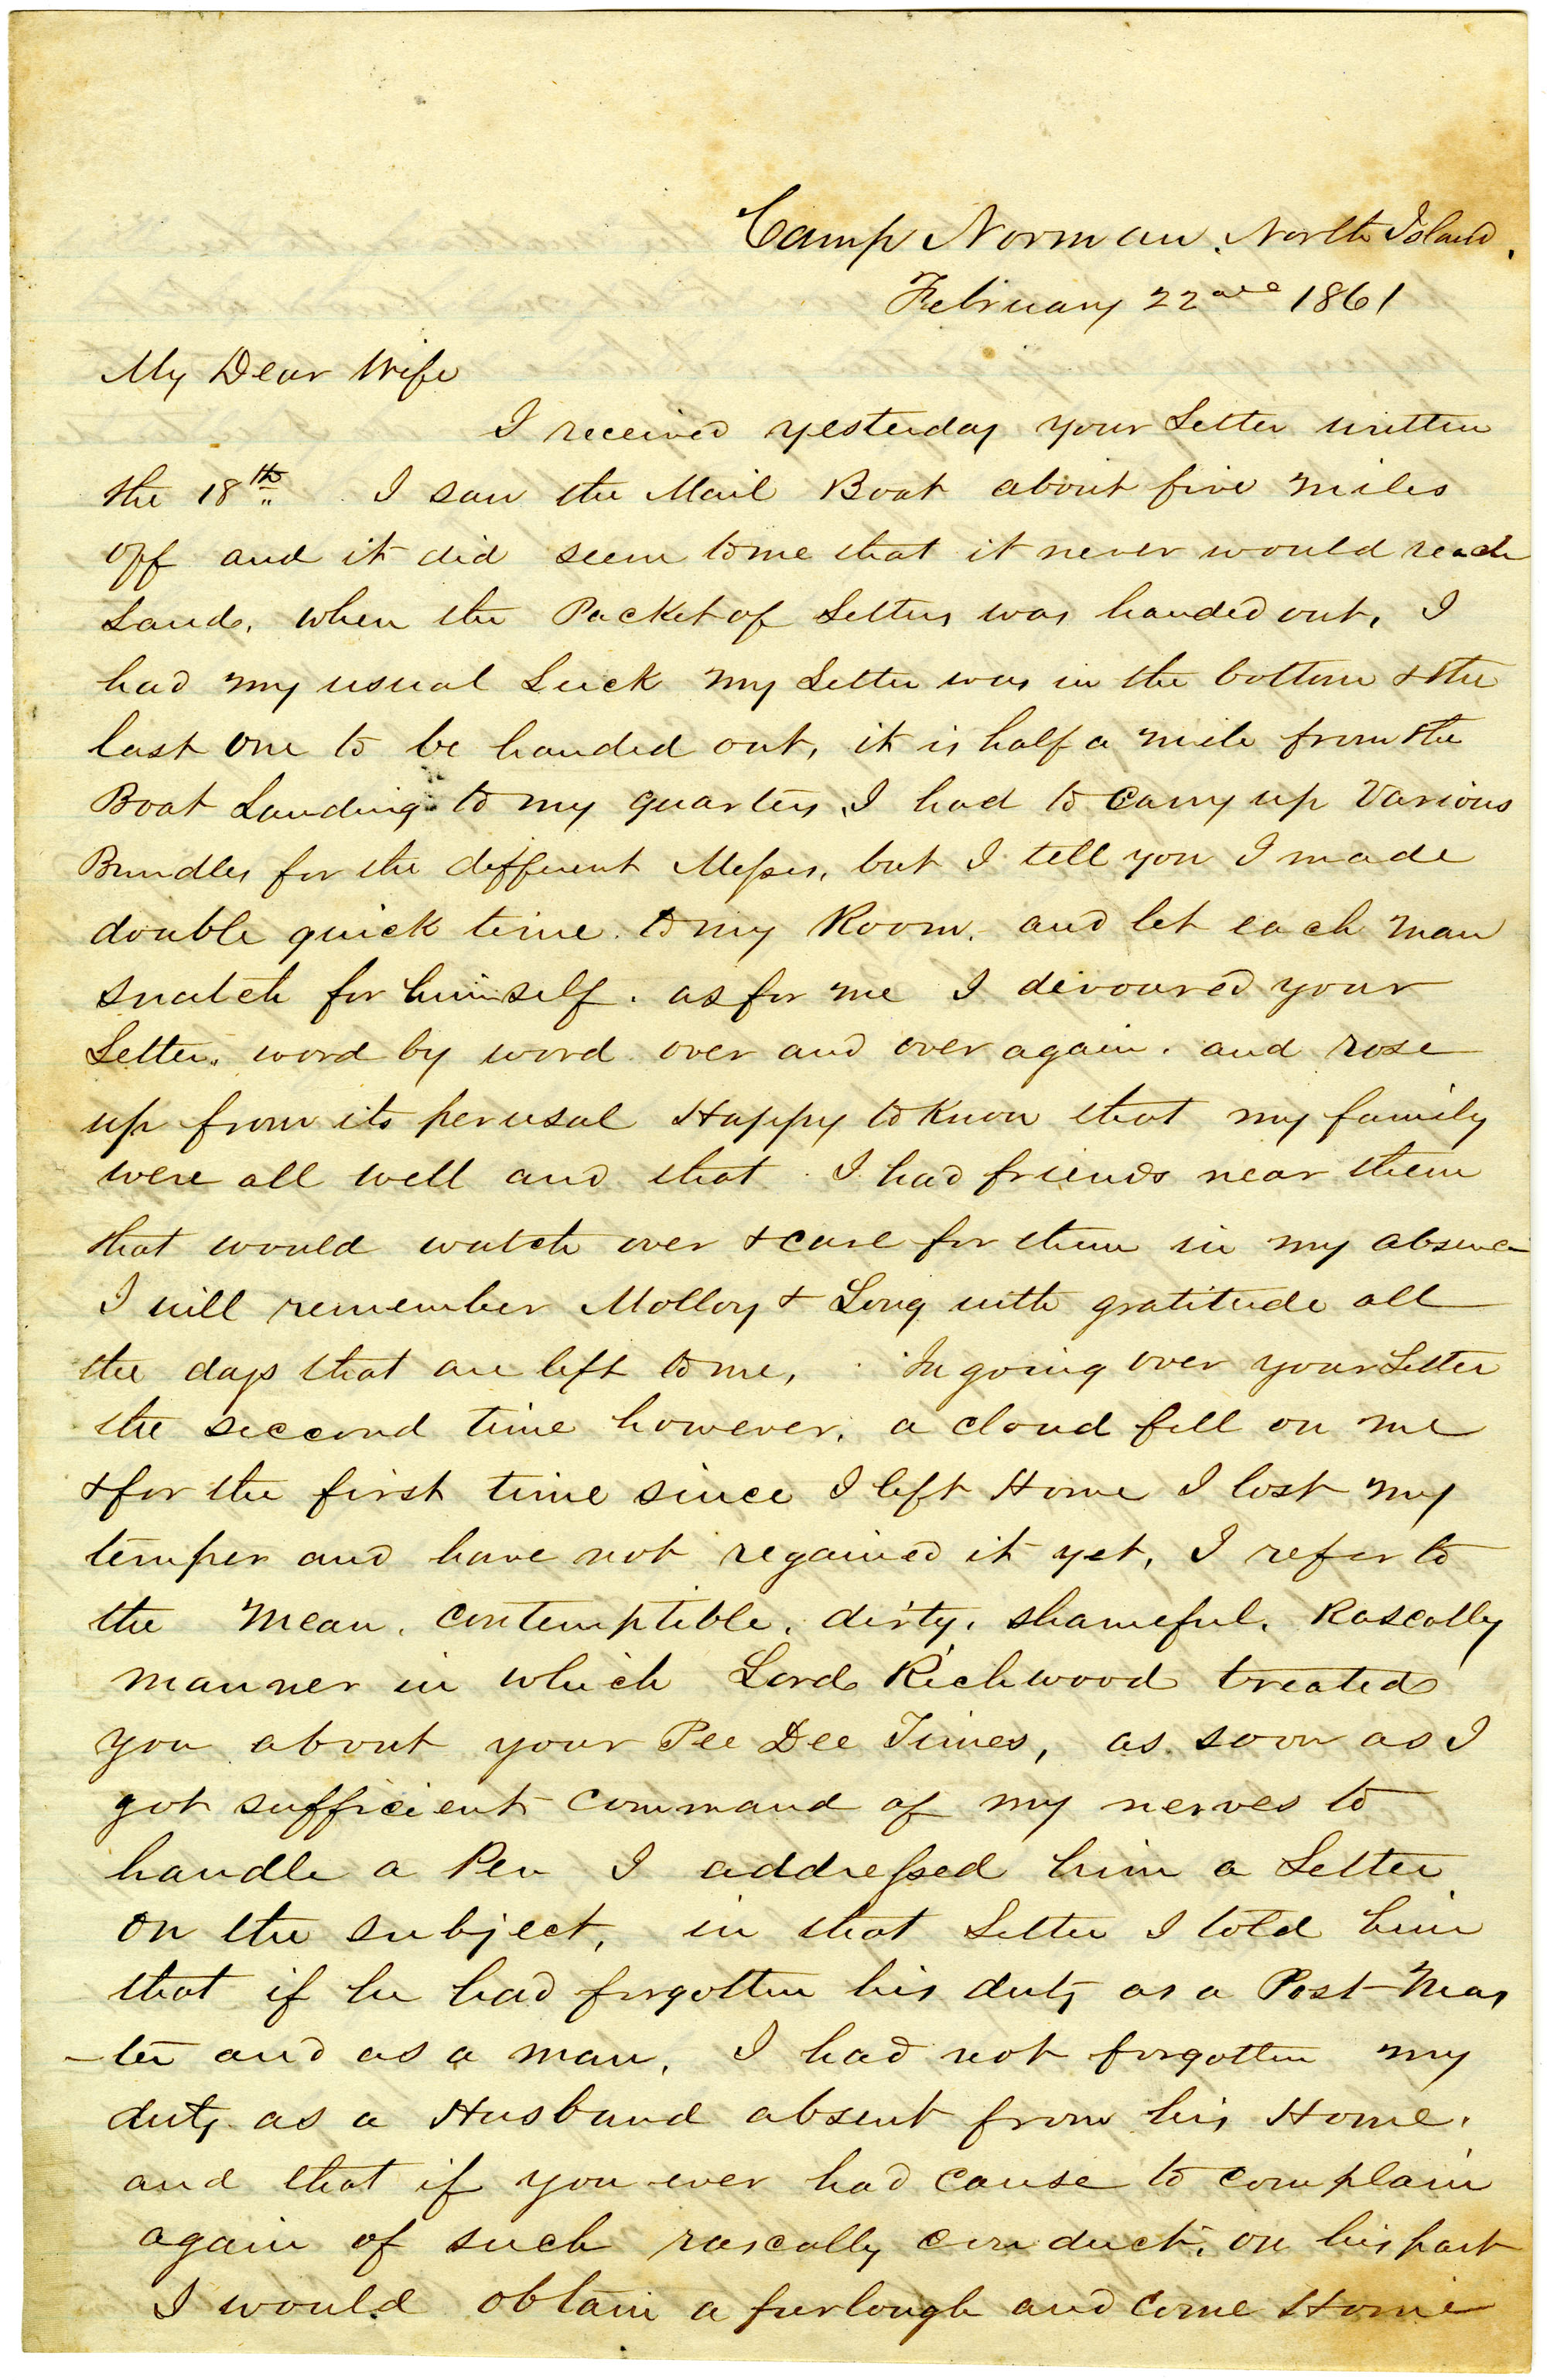 Letter from John R. Beaty to his wife Melvina, February 22, 1861